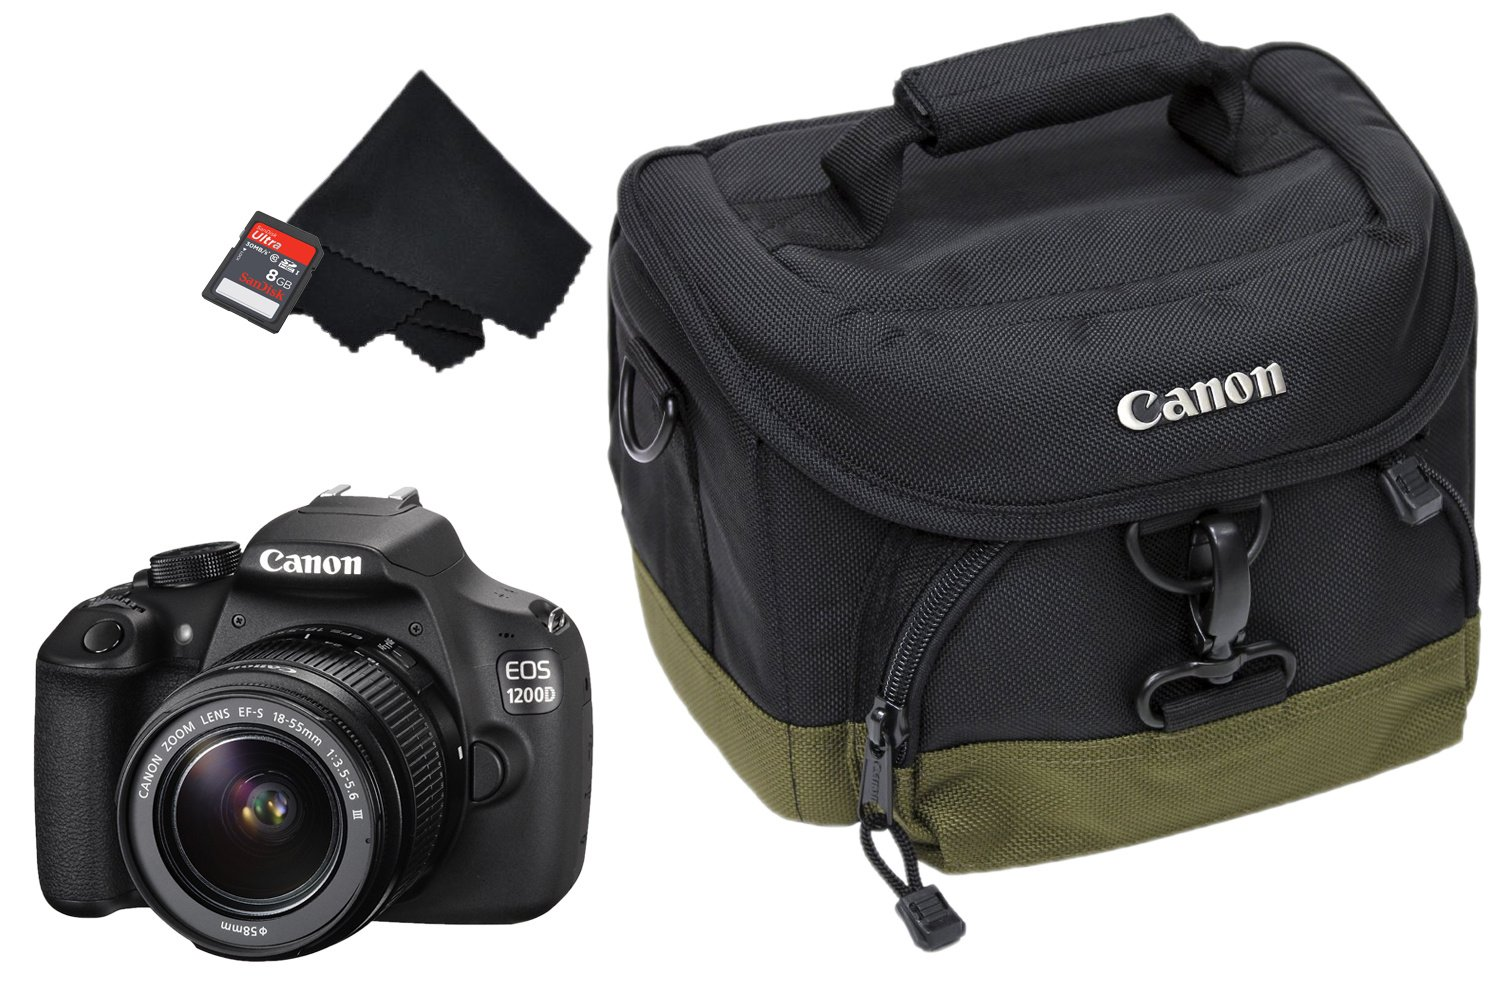 CANON EOS 1200D + EF-S 18-55 III DC Value Up kit